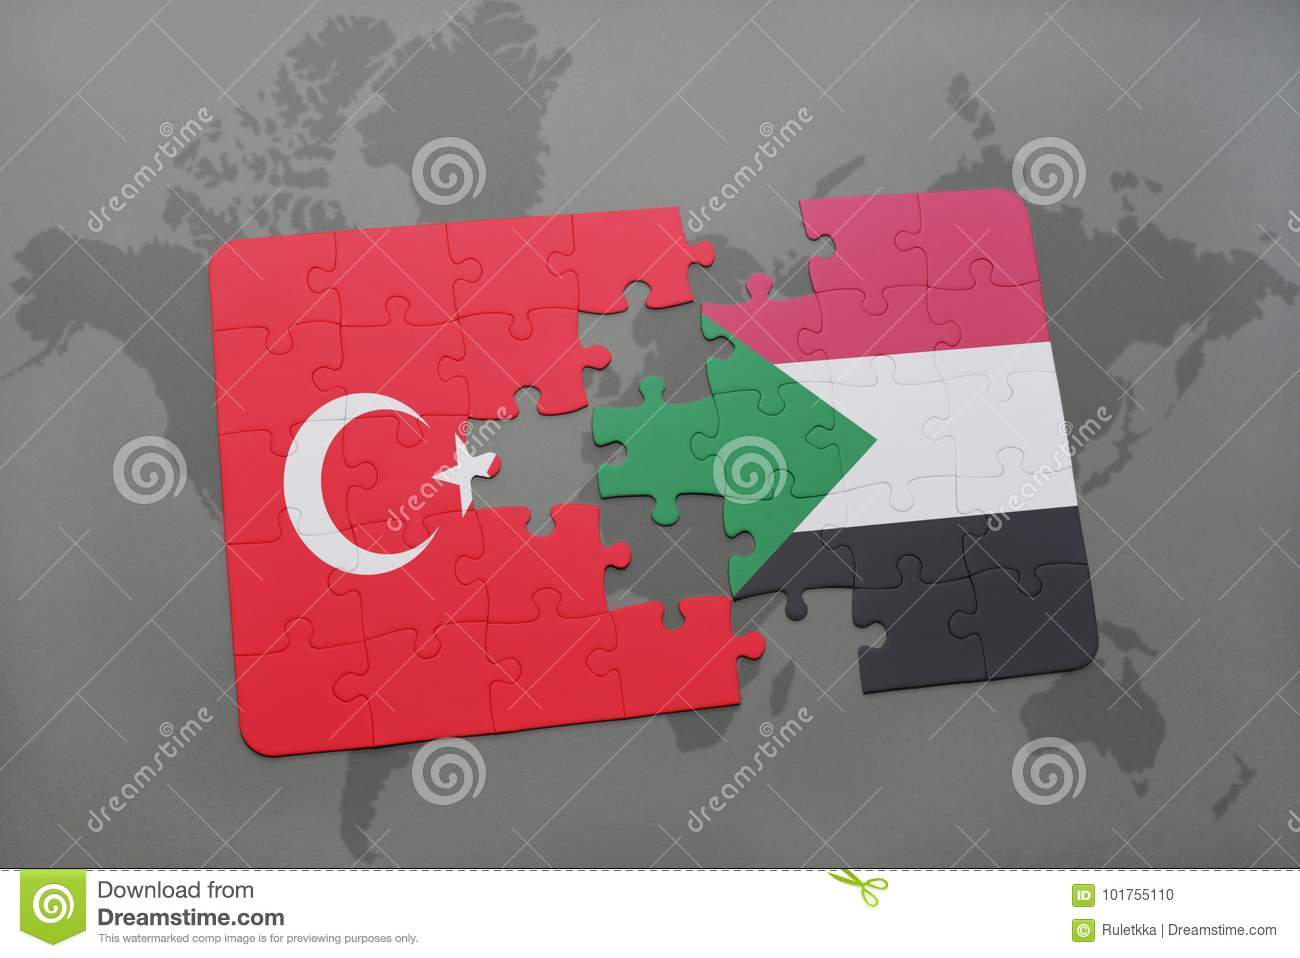 puzzle with the national flag of turkey and sudan on a world map